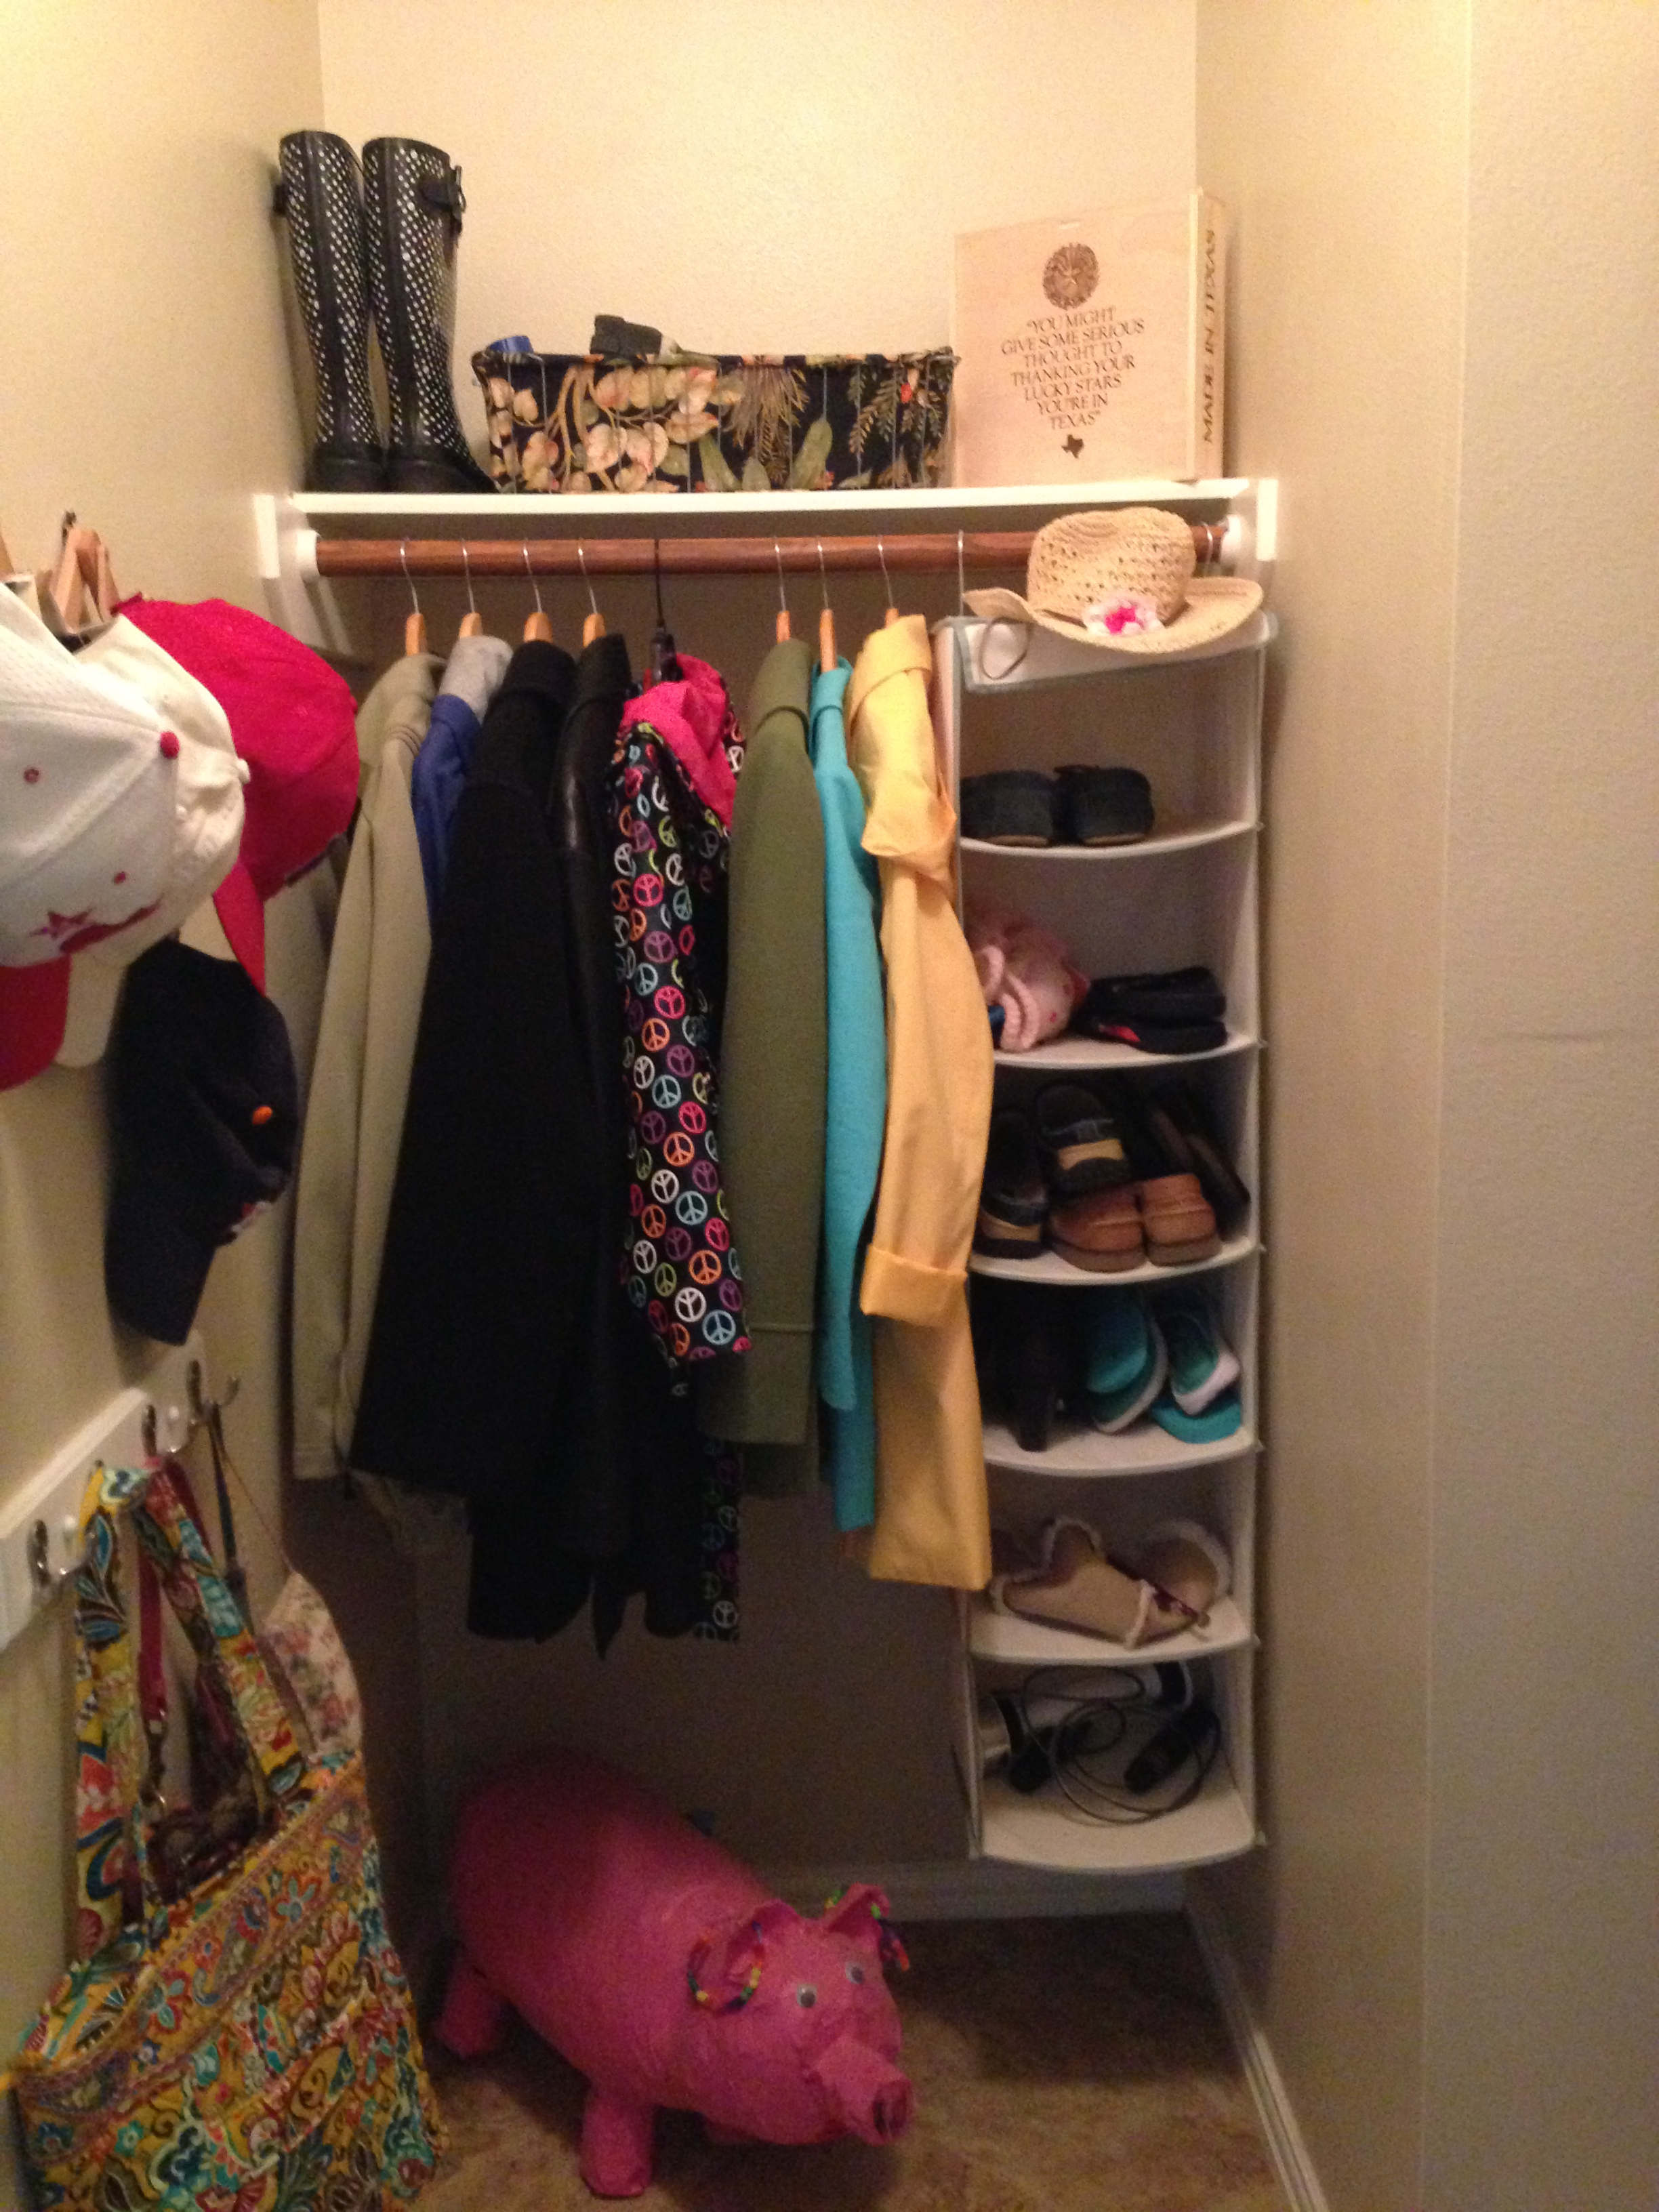 Closets This Neat U0026 Orderly Fill Me With A Crazy Amount Of Happiness.